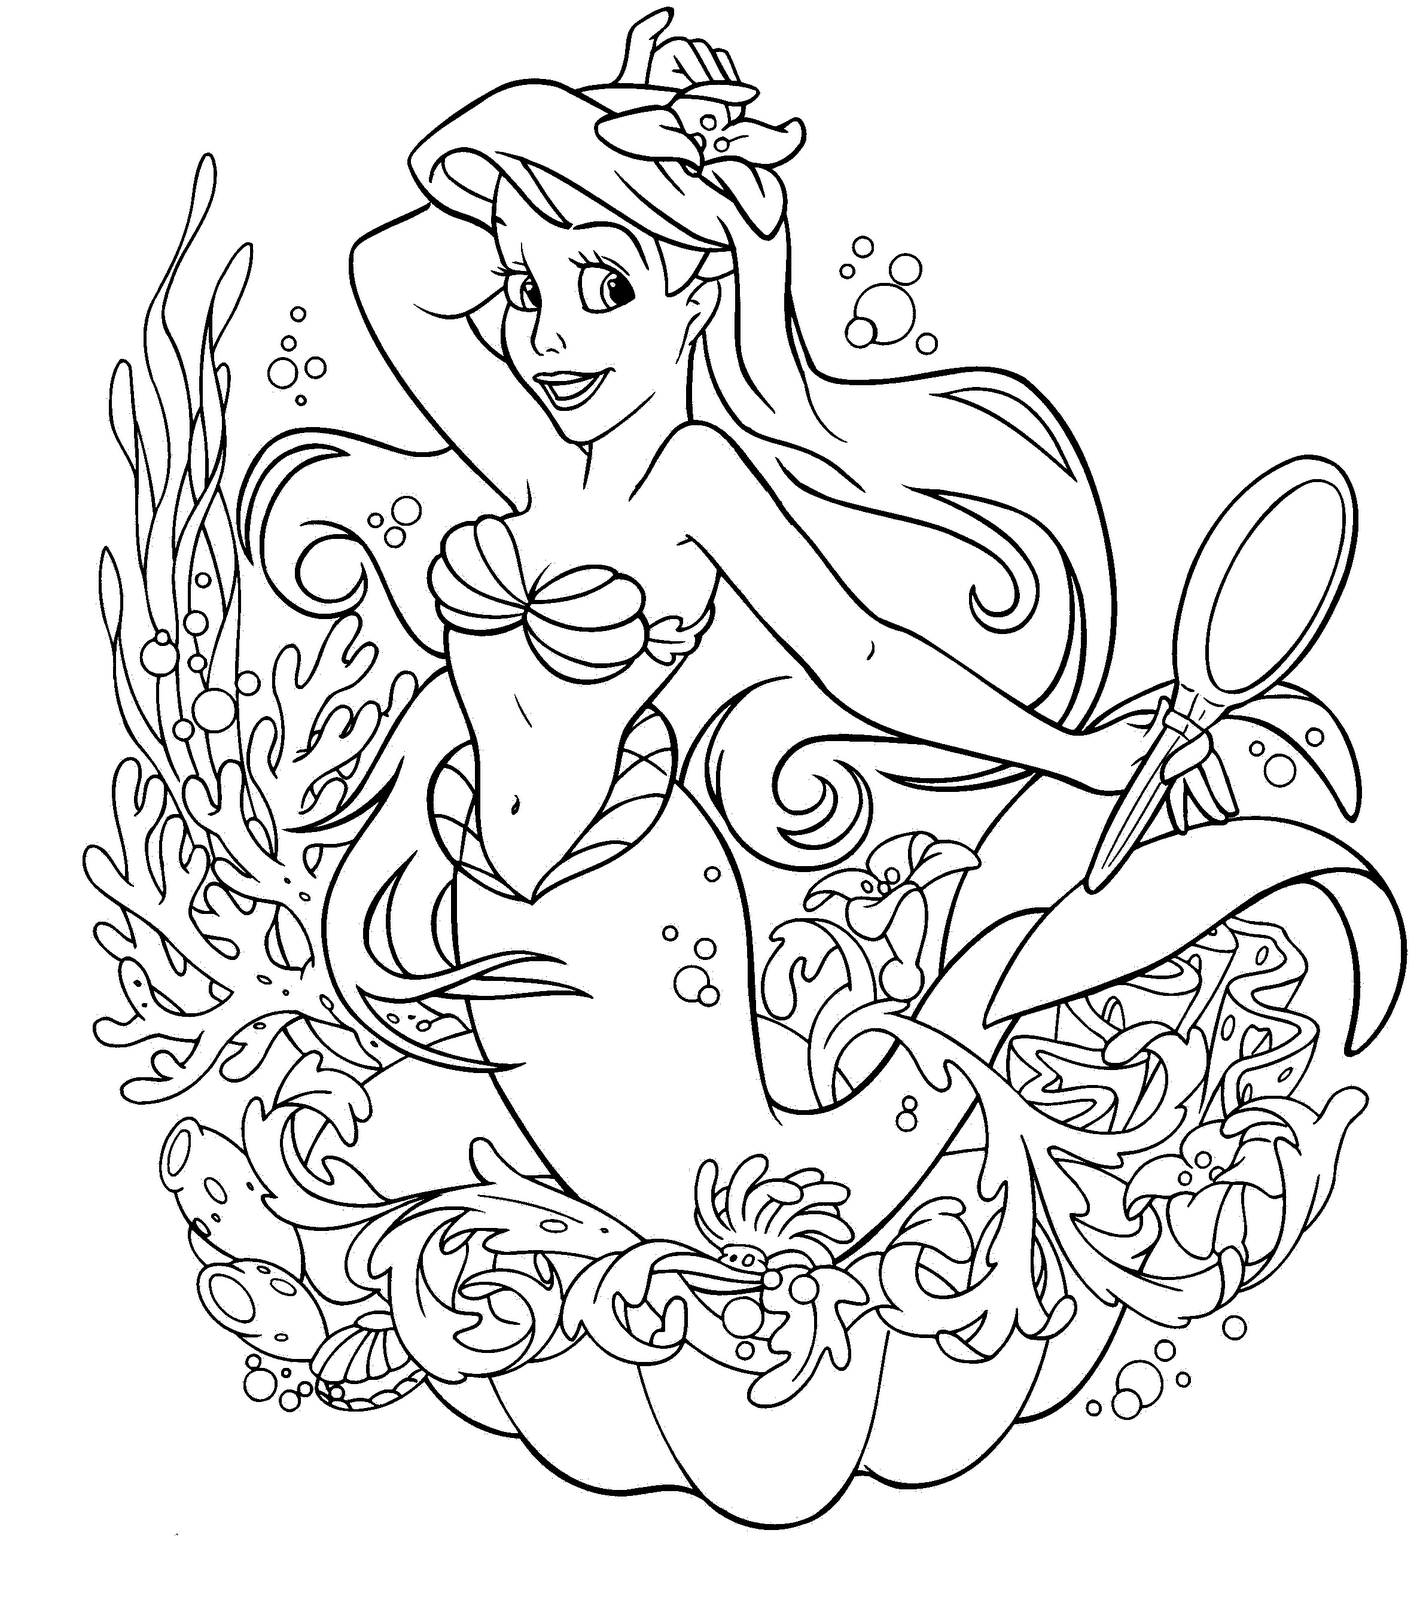 princess coloring pages, kids coloring pages Malebog